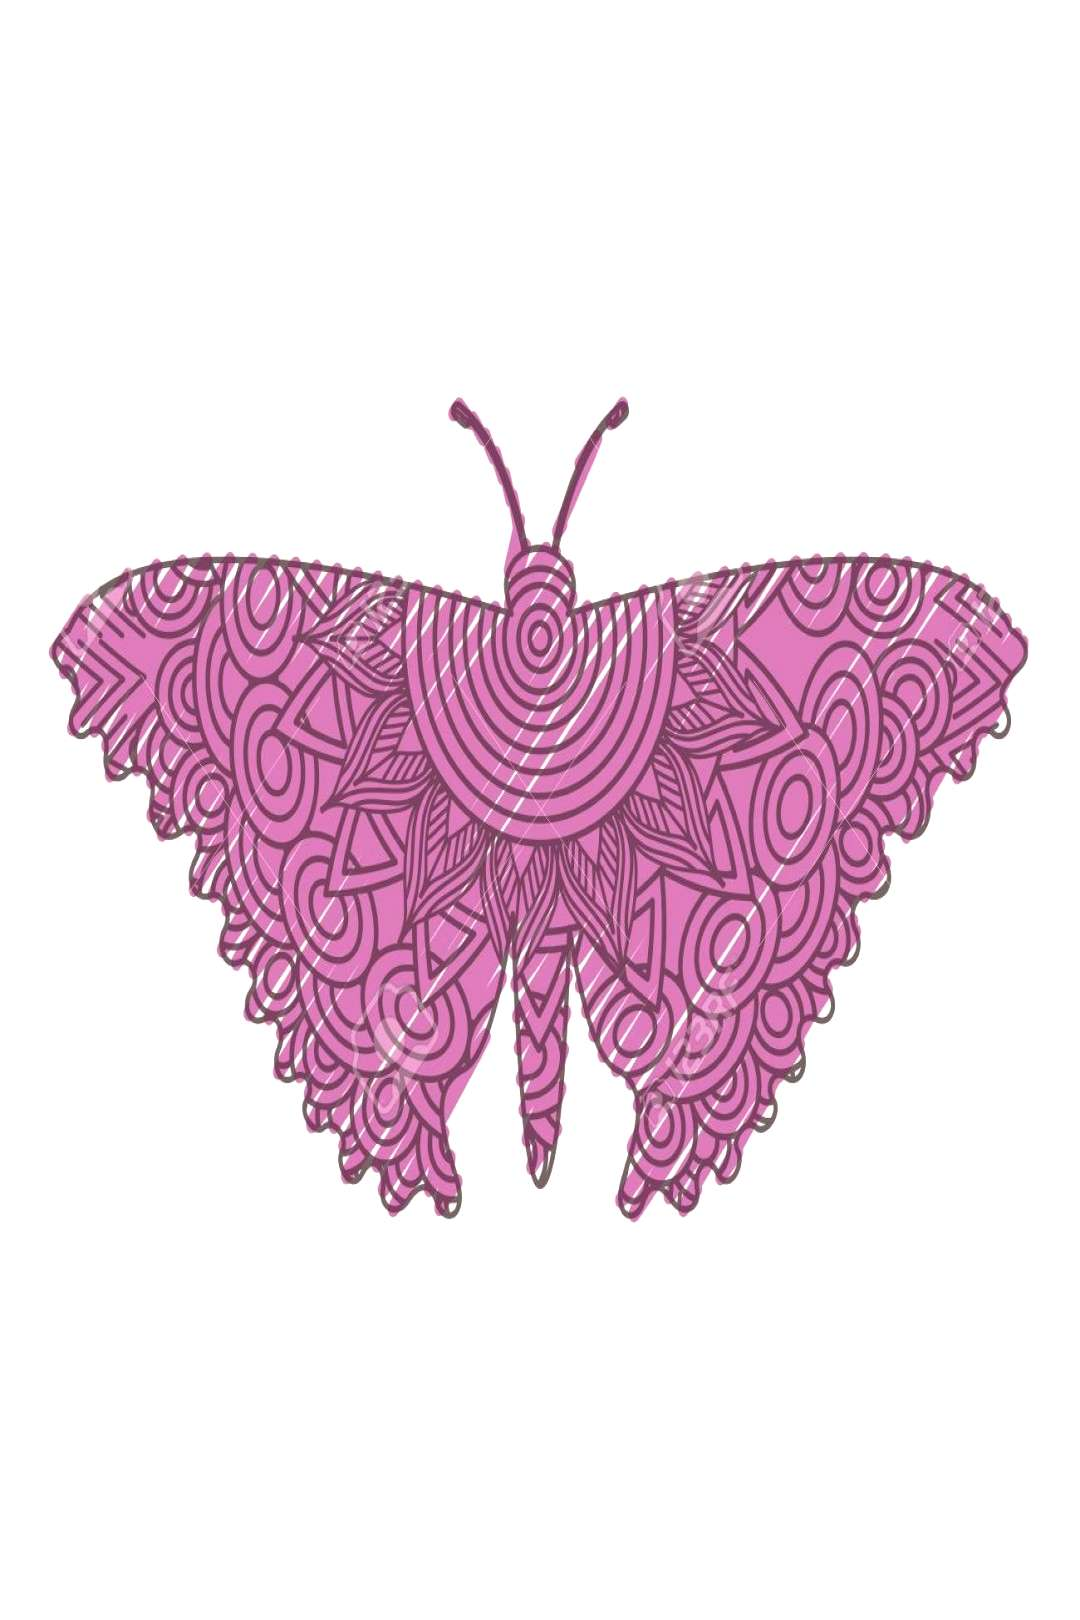 Hand Drawn For Adult Coloring Pages With Moth Bug Vector Illustration